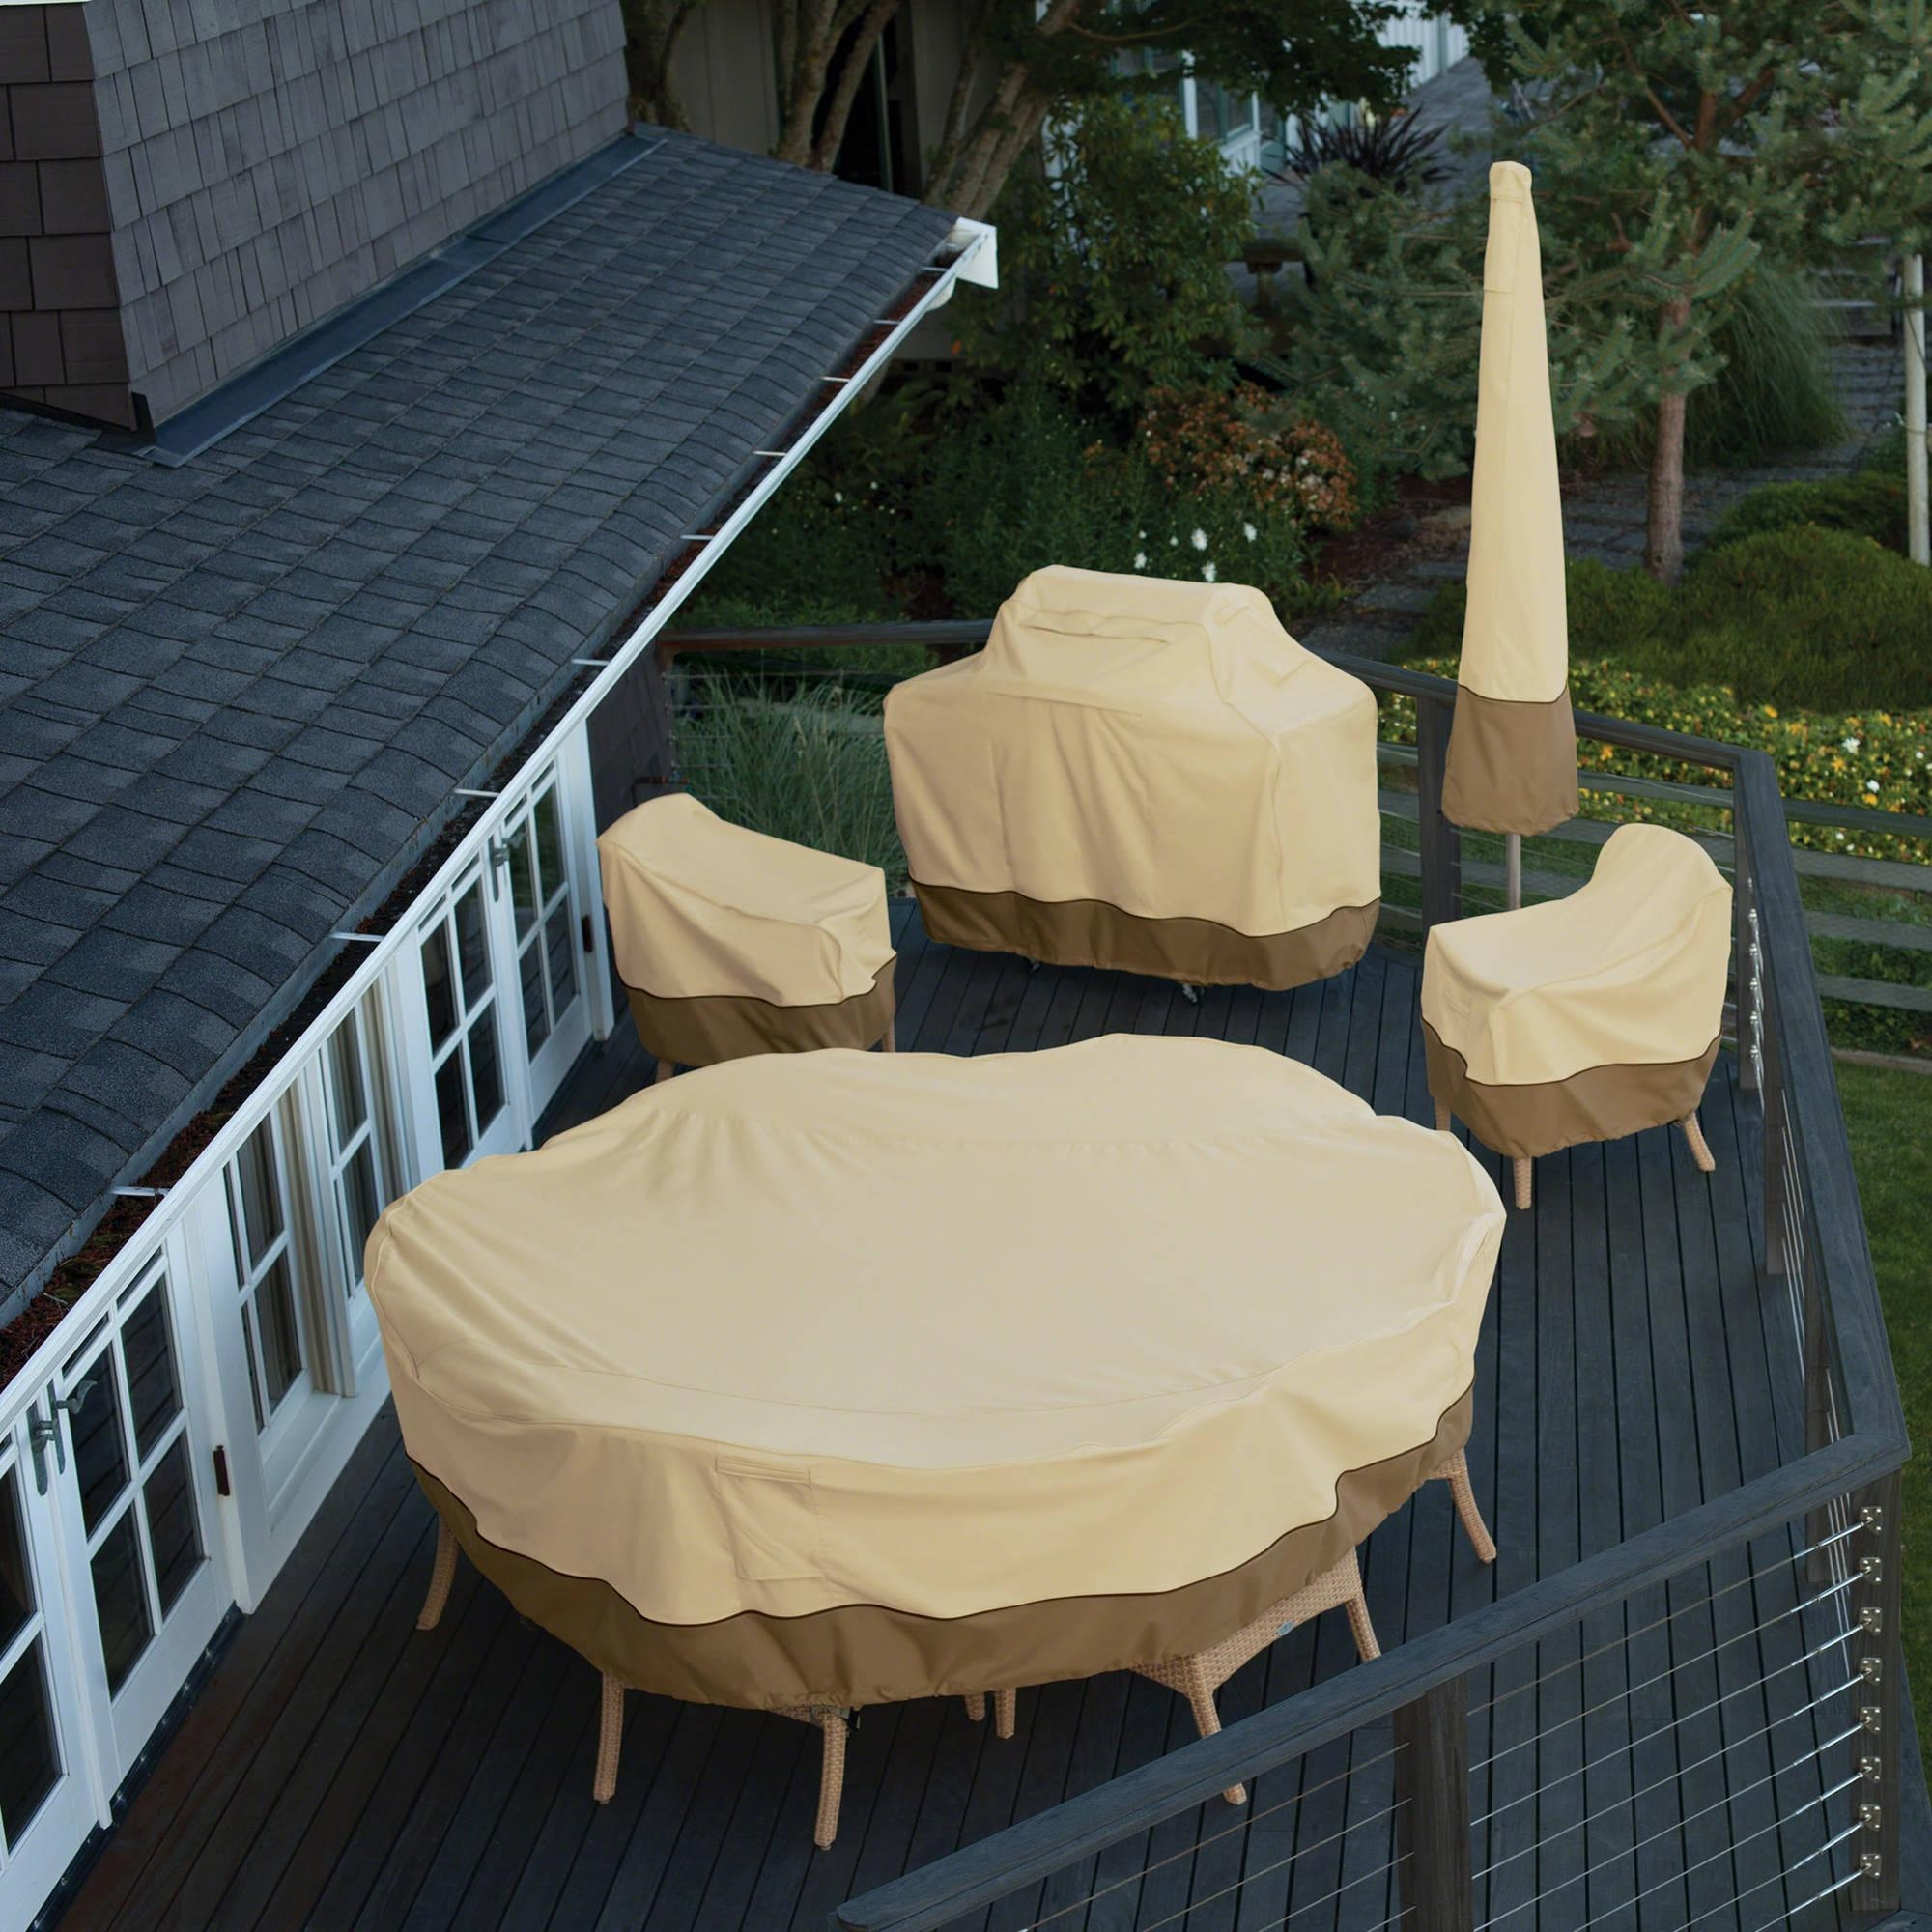 Classic Accessories Veranda Round Patio Table & Chair Set Cover For Garden Sofa Covers (Image 4 of 22)